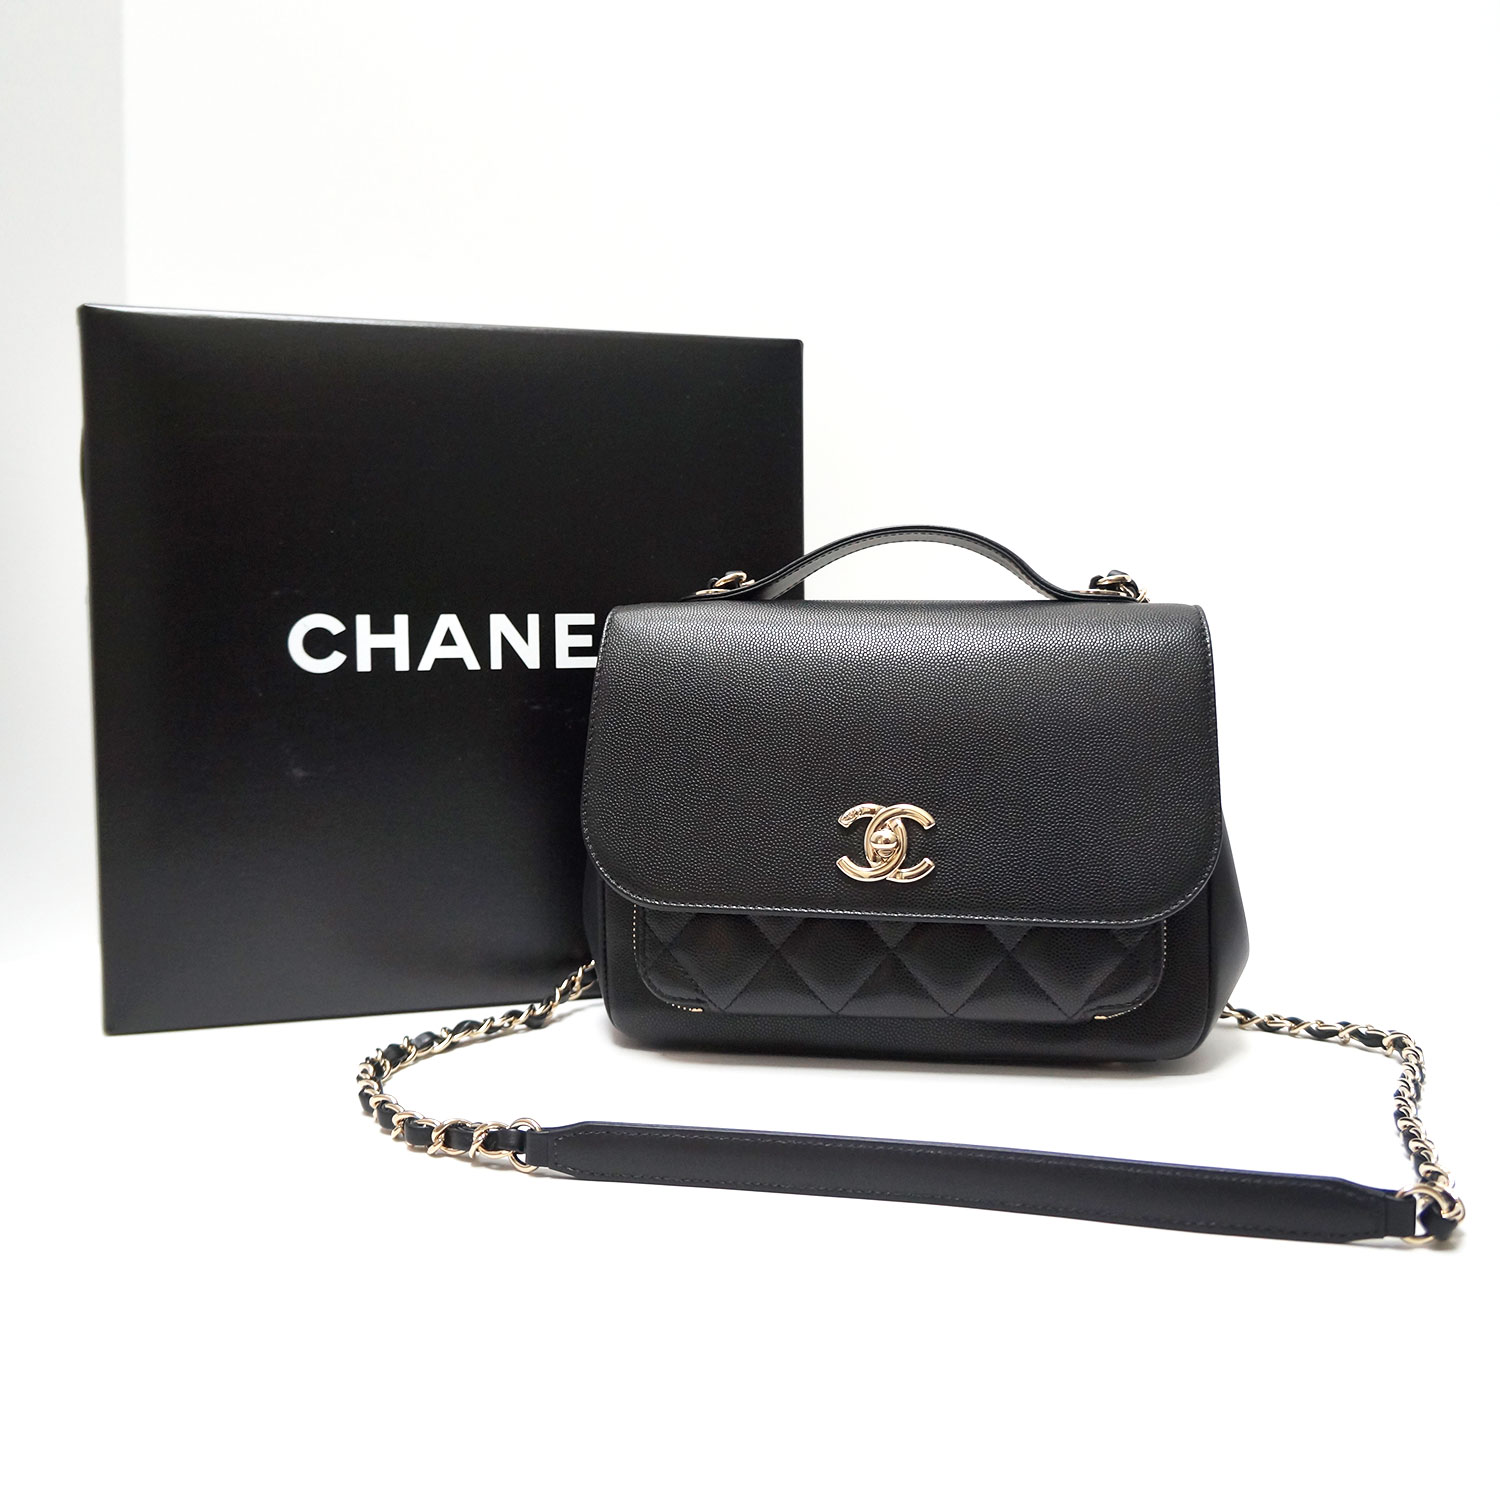 2b6b72e78fb1 Chanel Business Affinity Black Caviar Leather Crossbody Top Handle ...